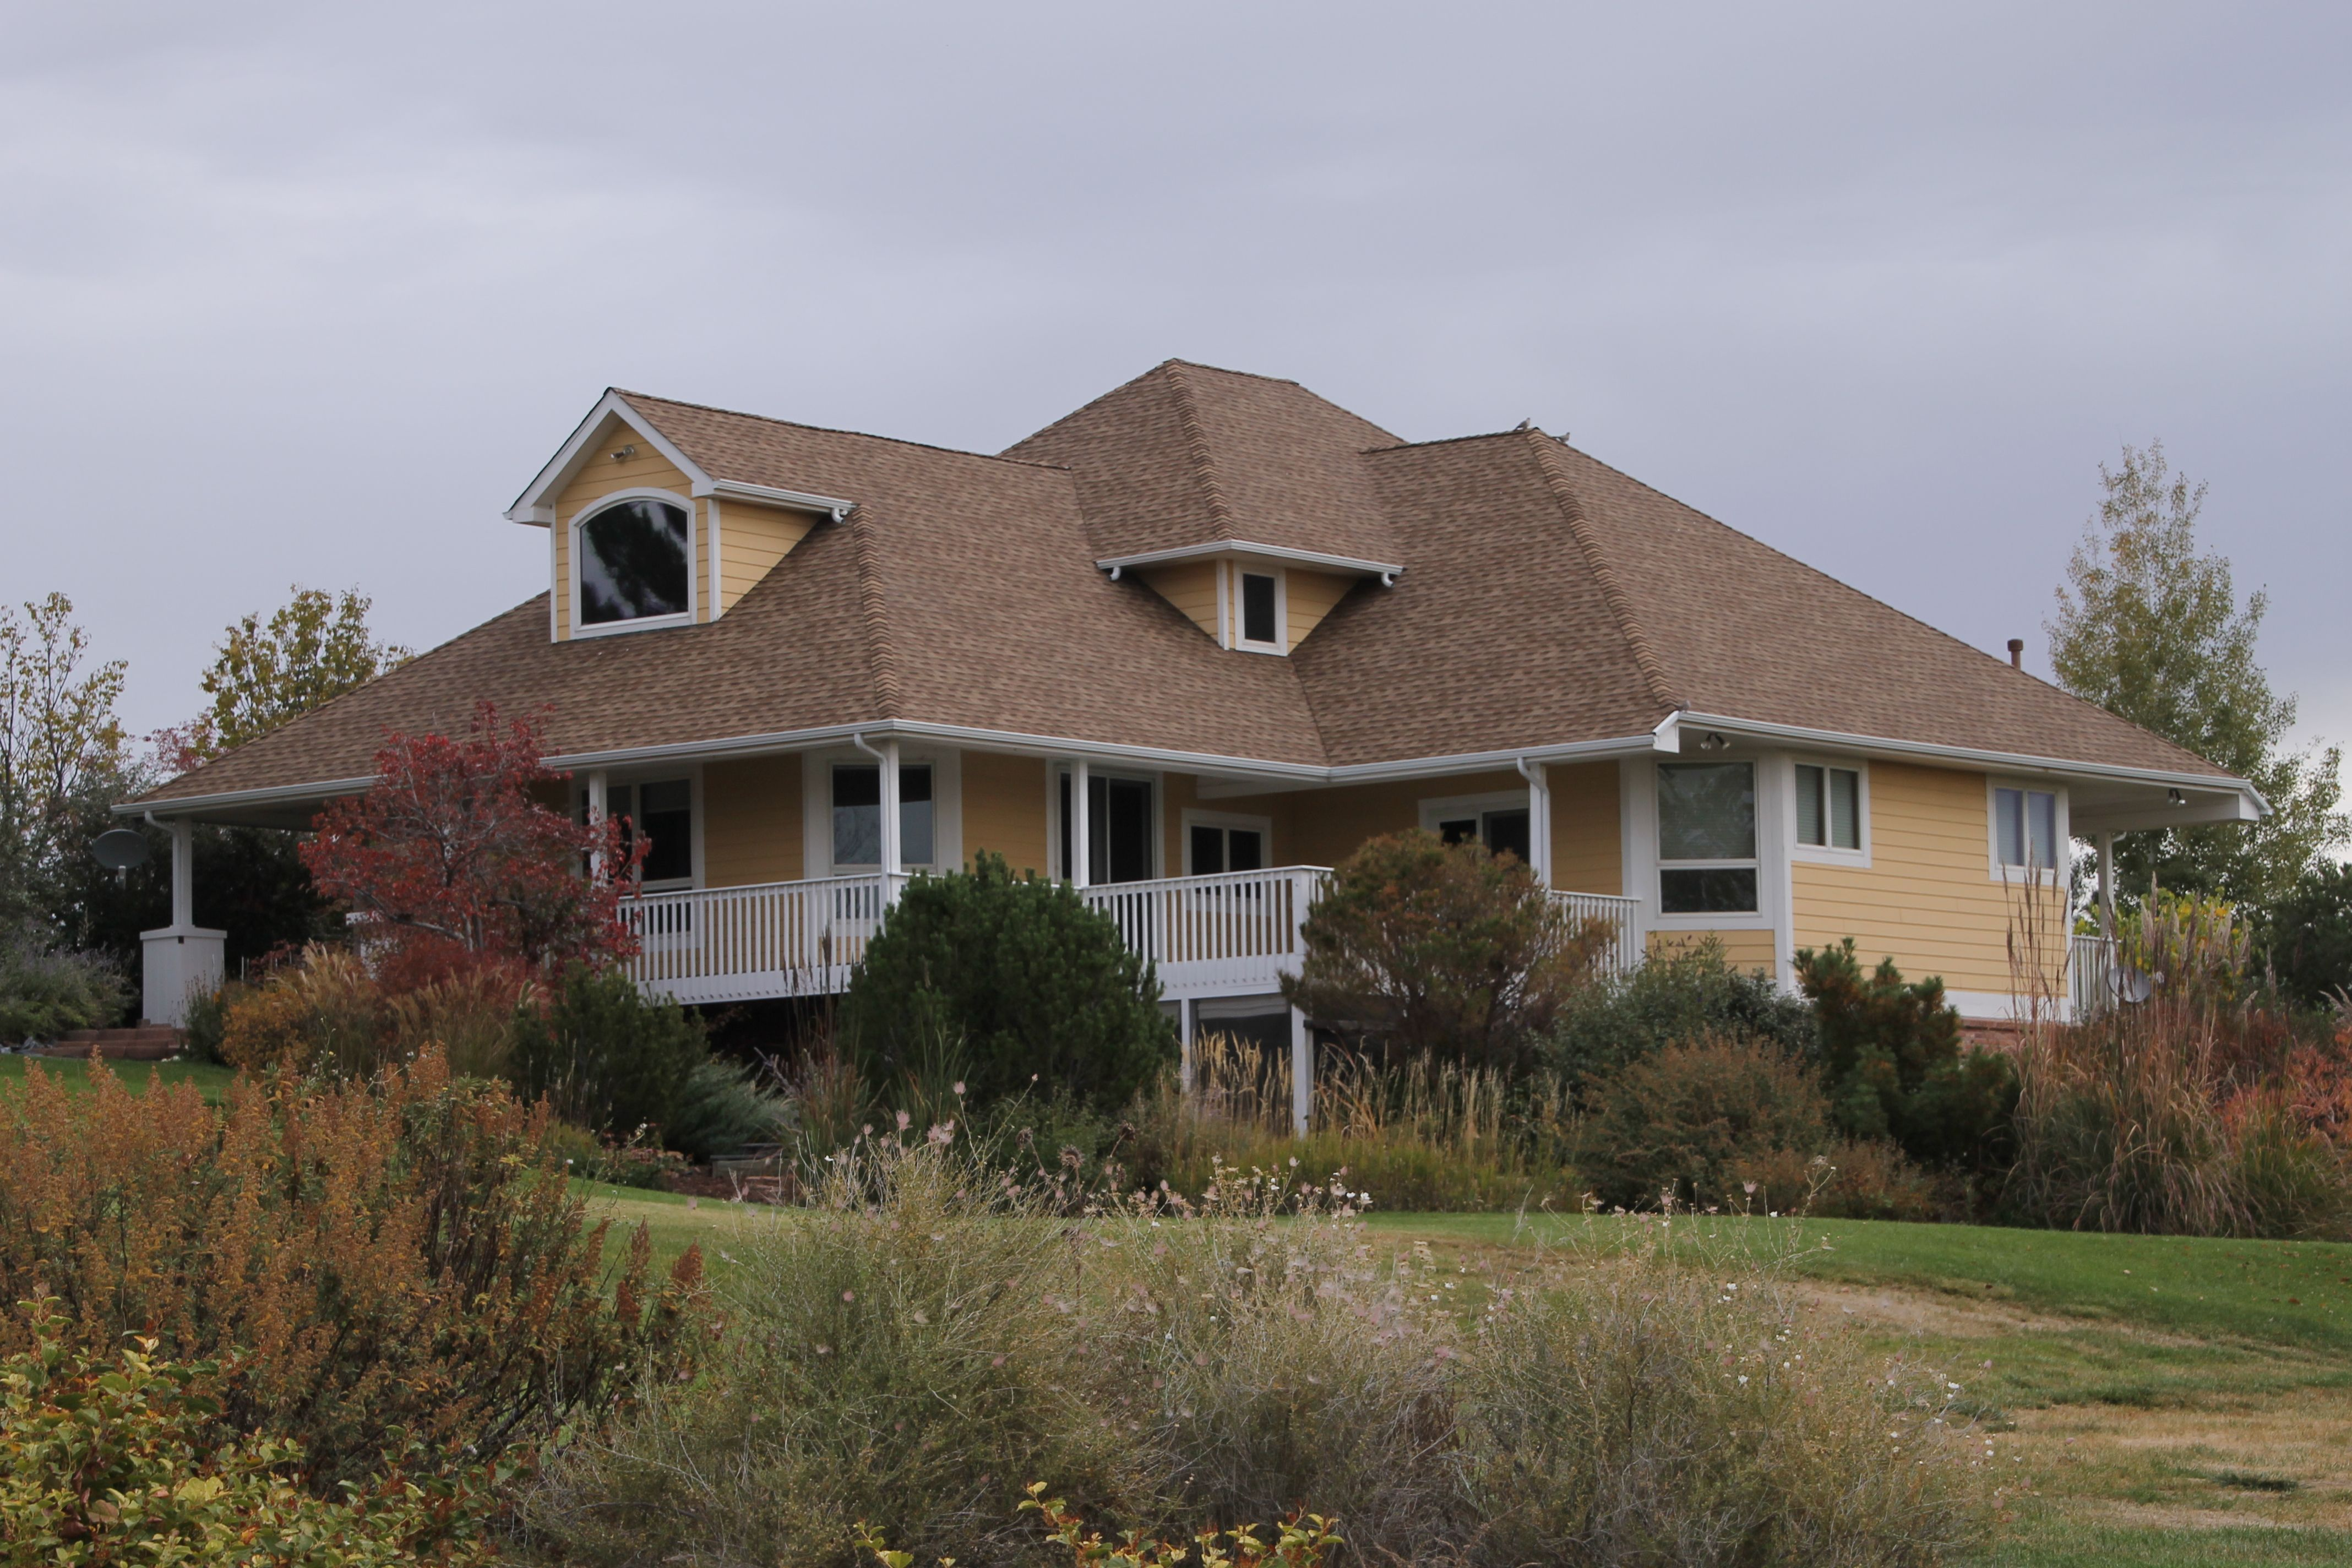 This Home In Berthoud Has Snakewood Shingles Installed From The Gaf Timberline Hd Shingle Line Architectural Shingles Roof Shingle Colors Roof Shingle Colors